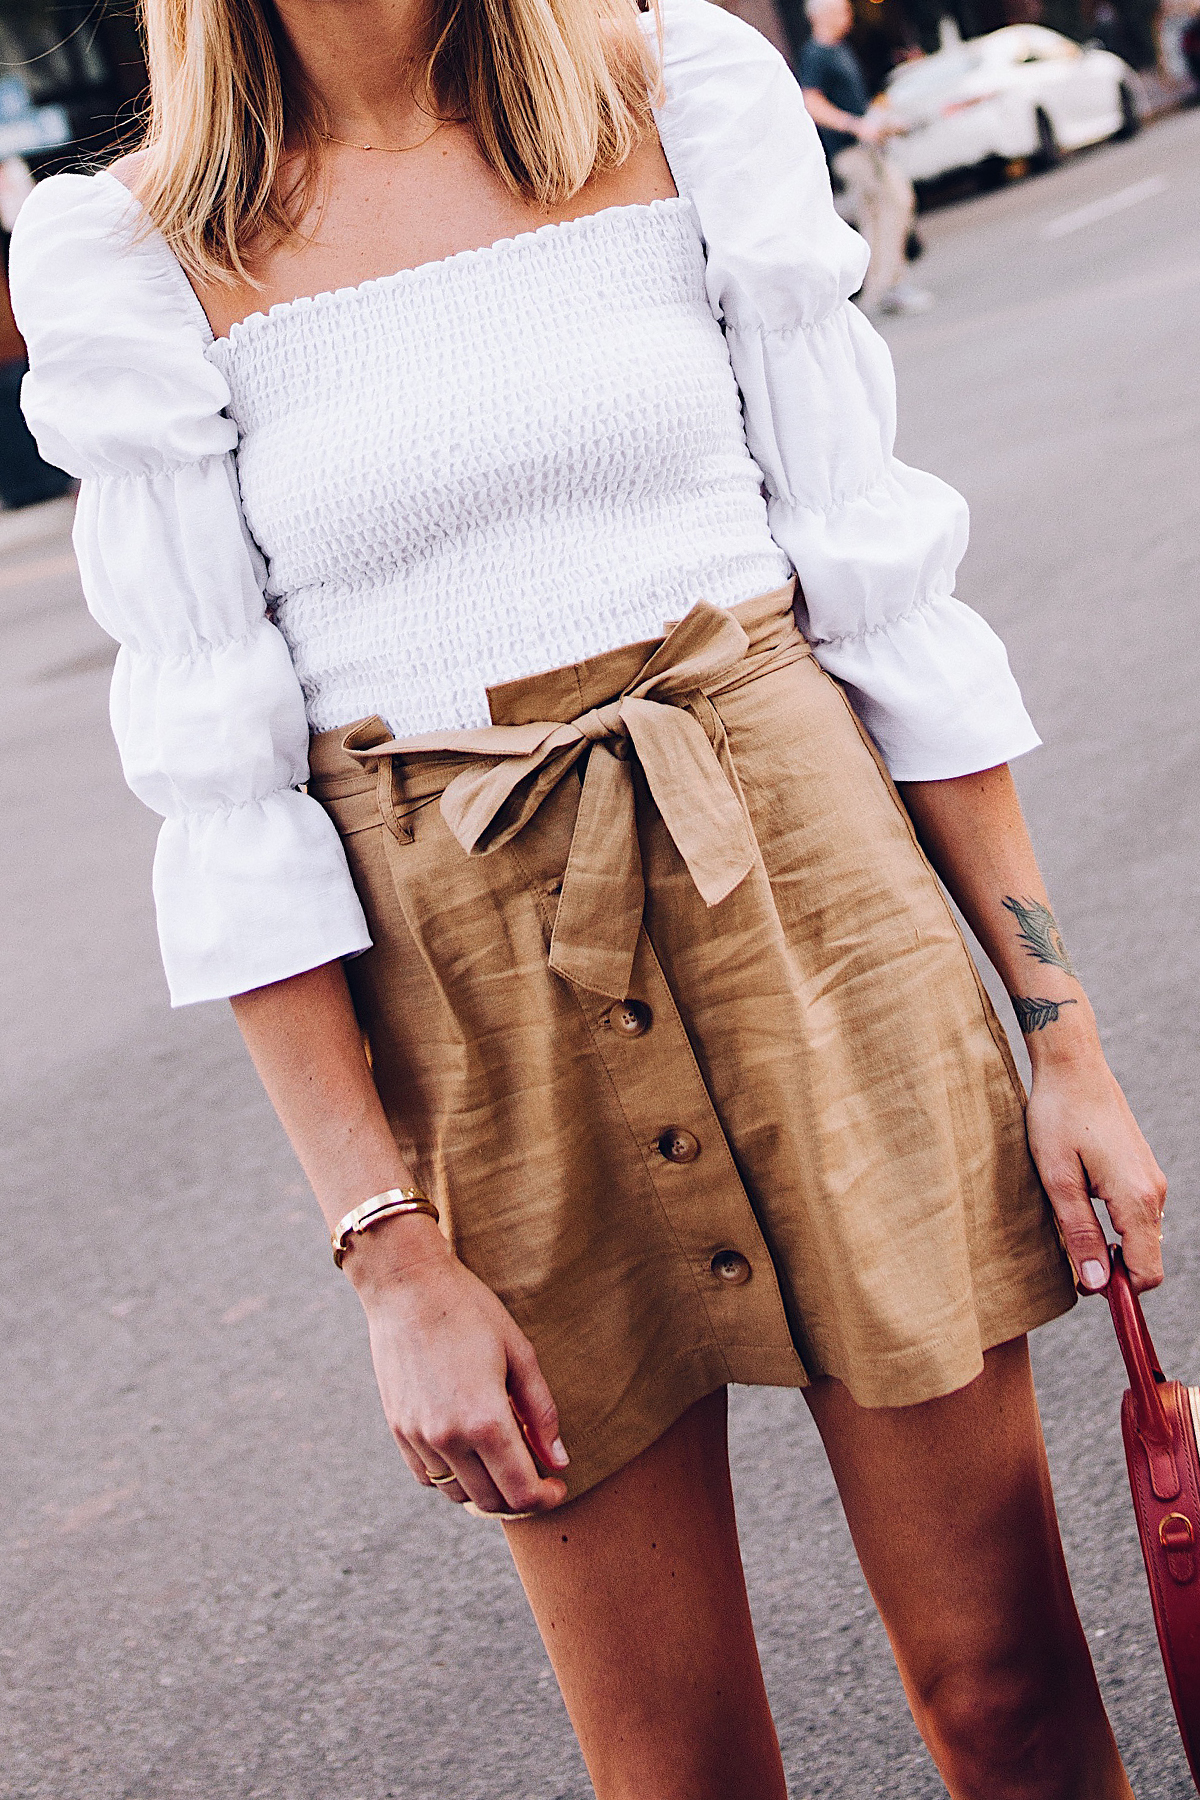 Woman Wearing Reformation White Smocked Top Topshop Khaki Button Front Skirt Fashion Jackson San Diego Blogger Fashion Blogger Street Style